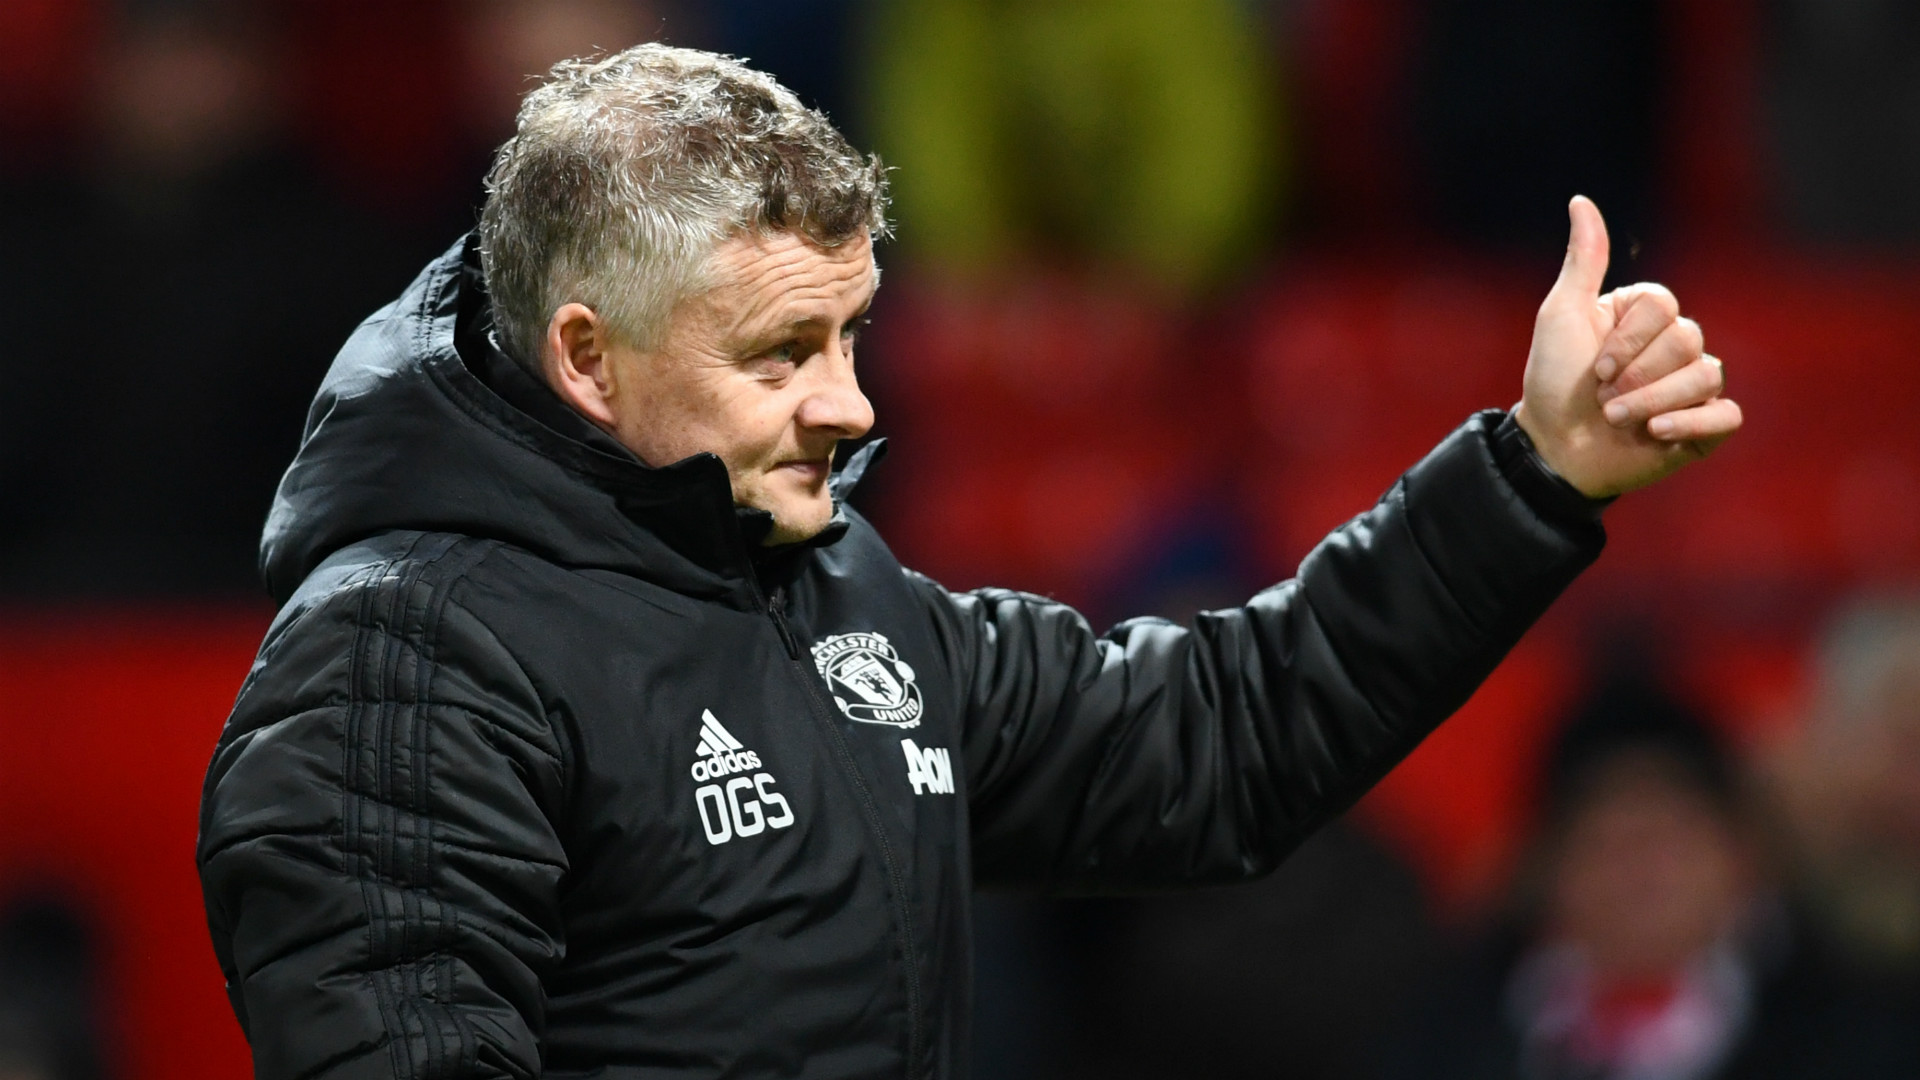 Manchester United's Maguire an injury doubt for League Cup semi: Solskjaer